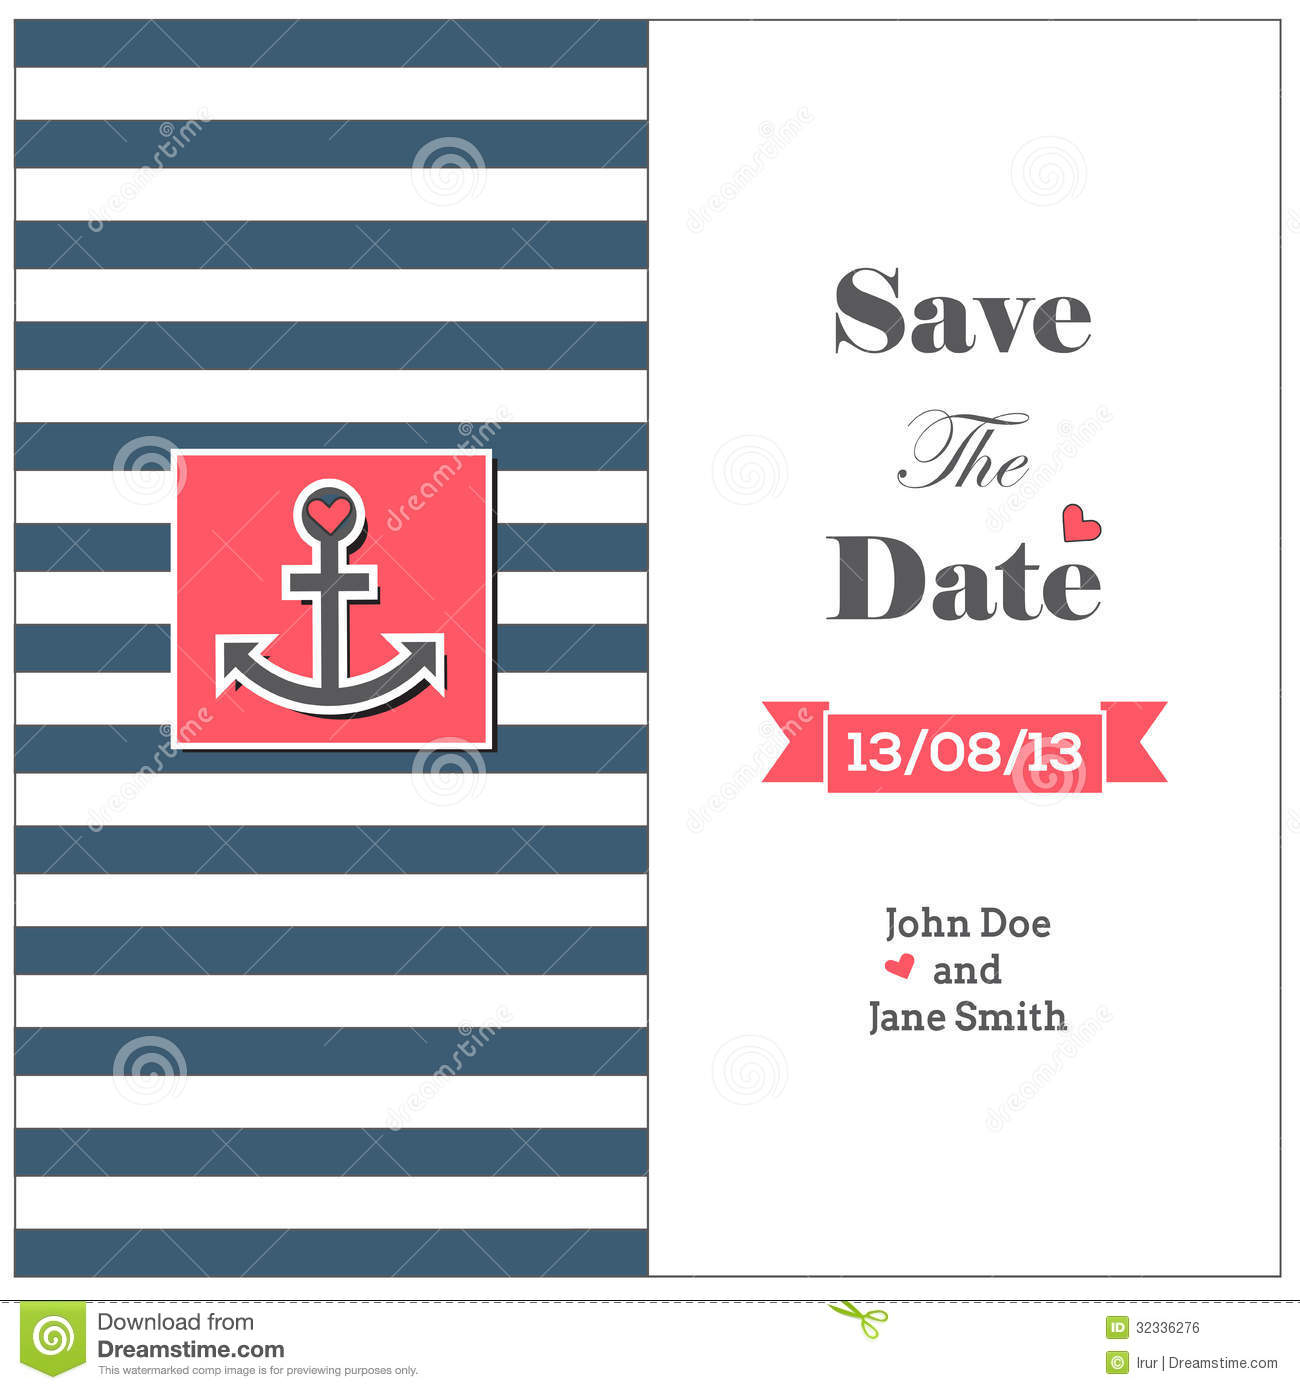 Wedding Nautical Invitation Card With Anchor Royalty Free Stock Image - Image: 32336276